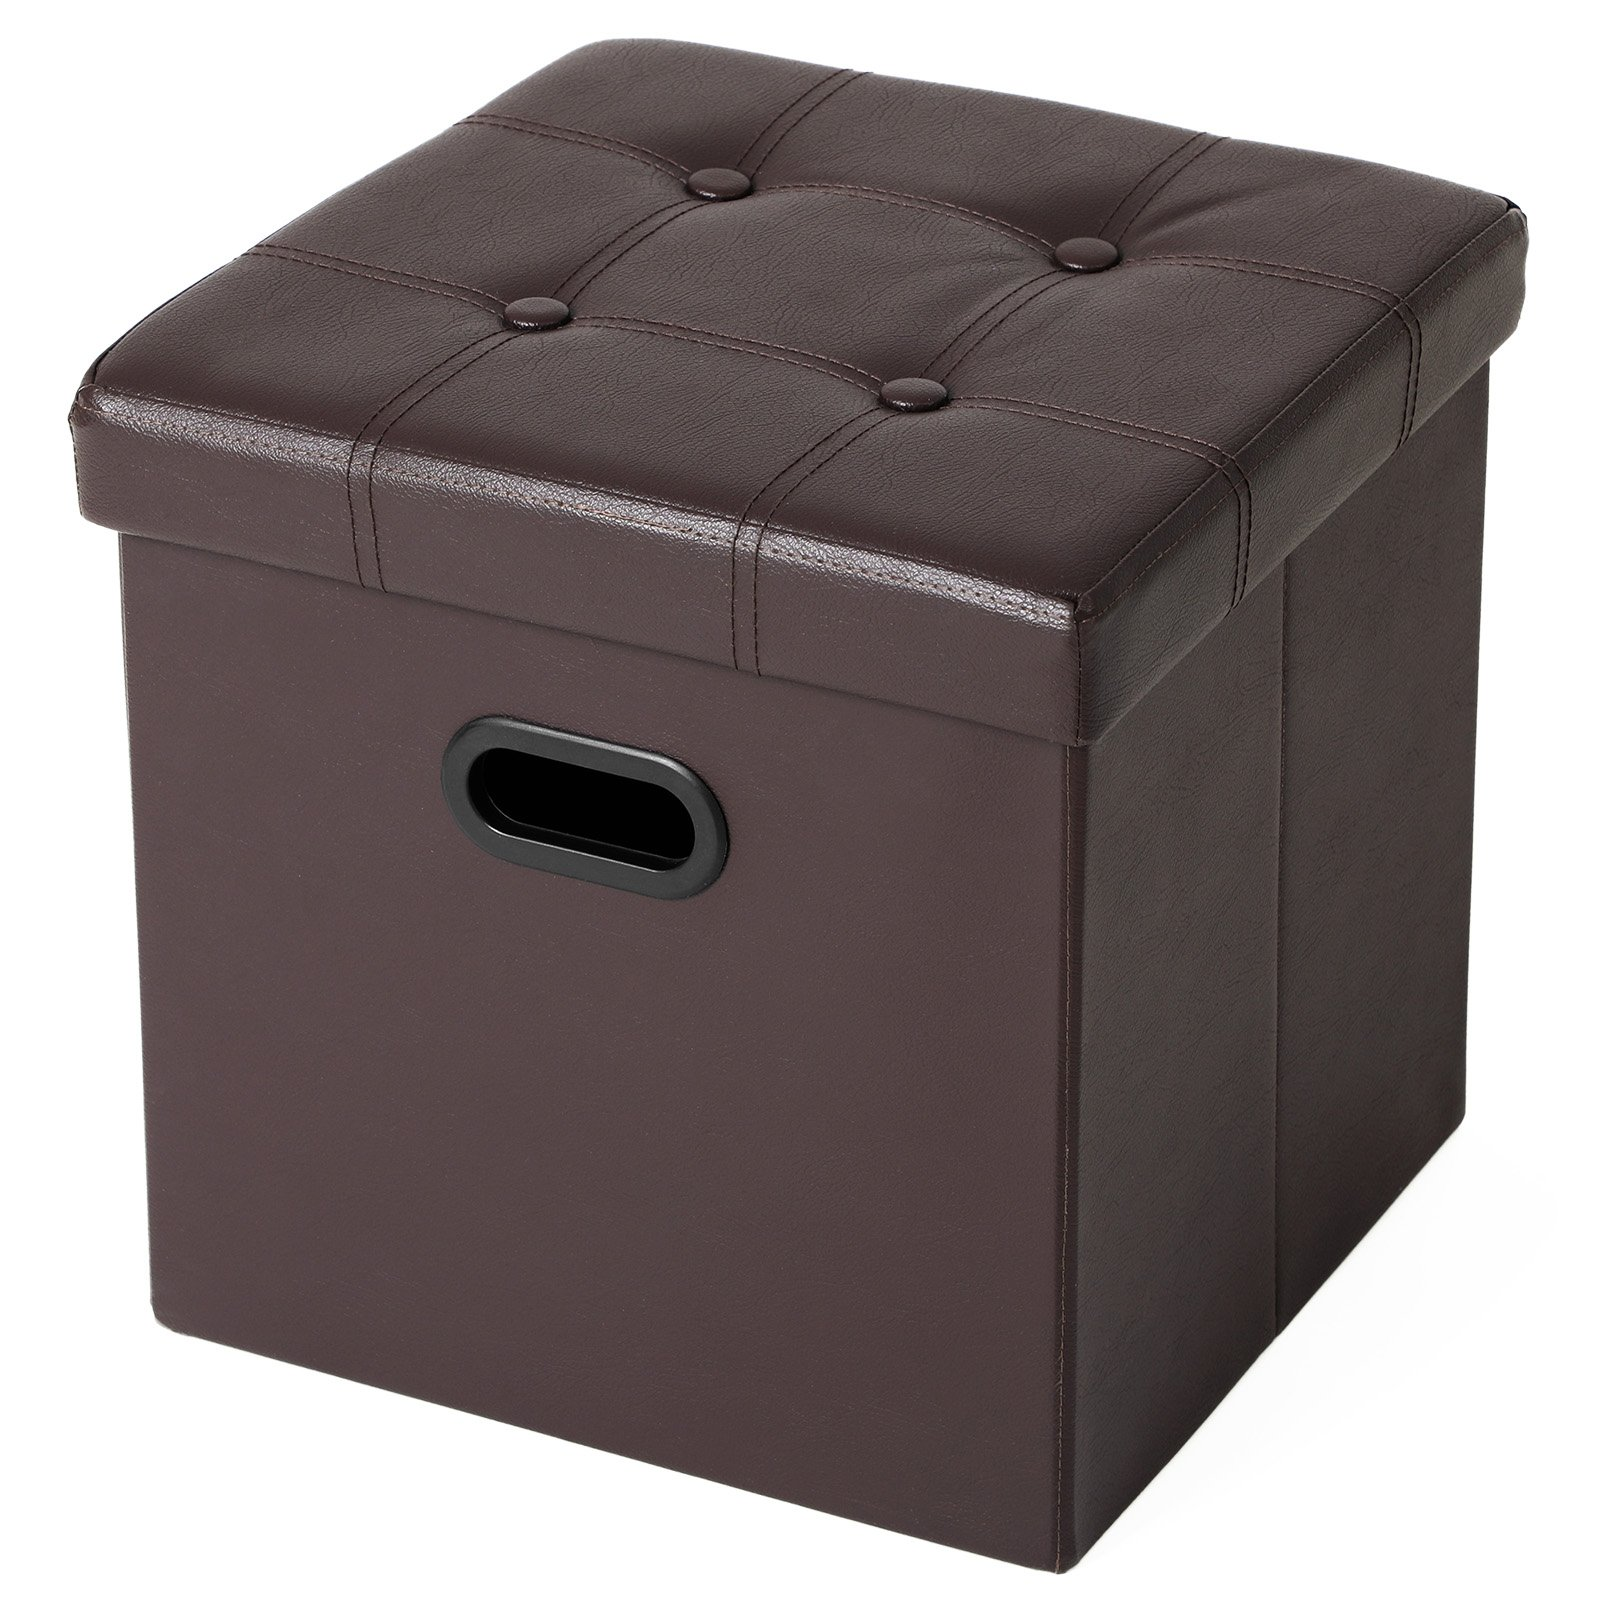 SONGMICS 15'' x 15'' x 15'' Storage Ottoman Cube/Footrest Stool/Puppy Step/Coffee Table with Hole Handle, Holds Up to 660lbs,Faux Leather, Brown ULSF30Z, 15'' by SONGMICS